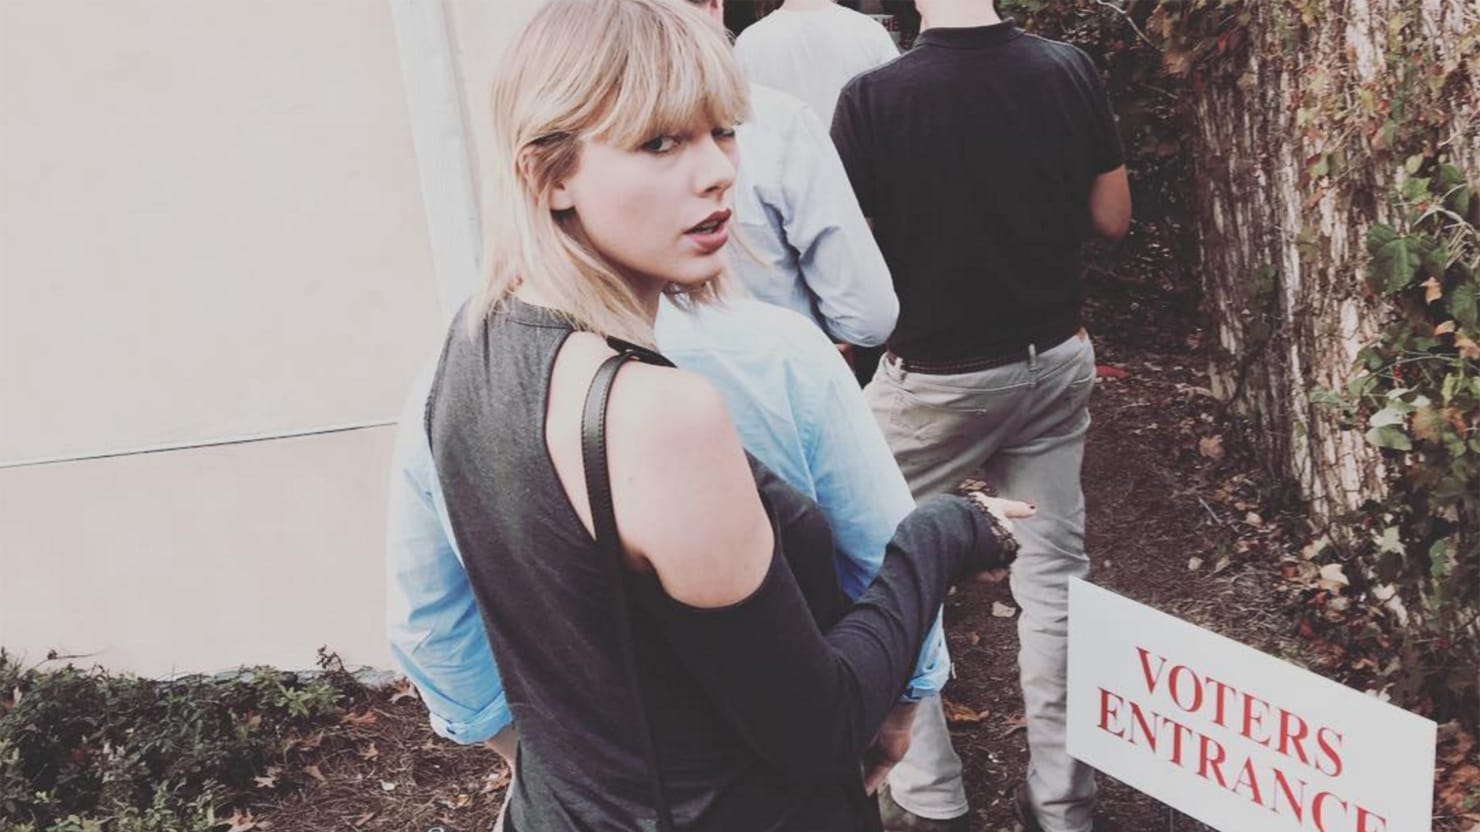 Half Jacket 2 0 >> Who Did Taylor Swift Vote For?